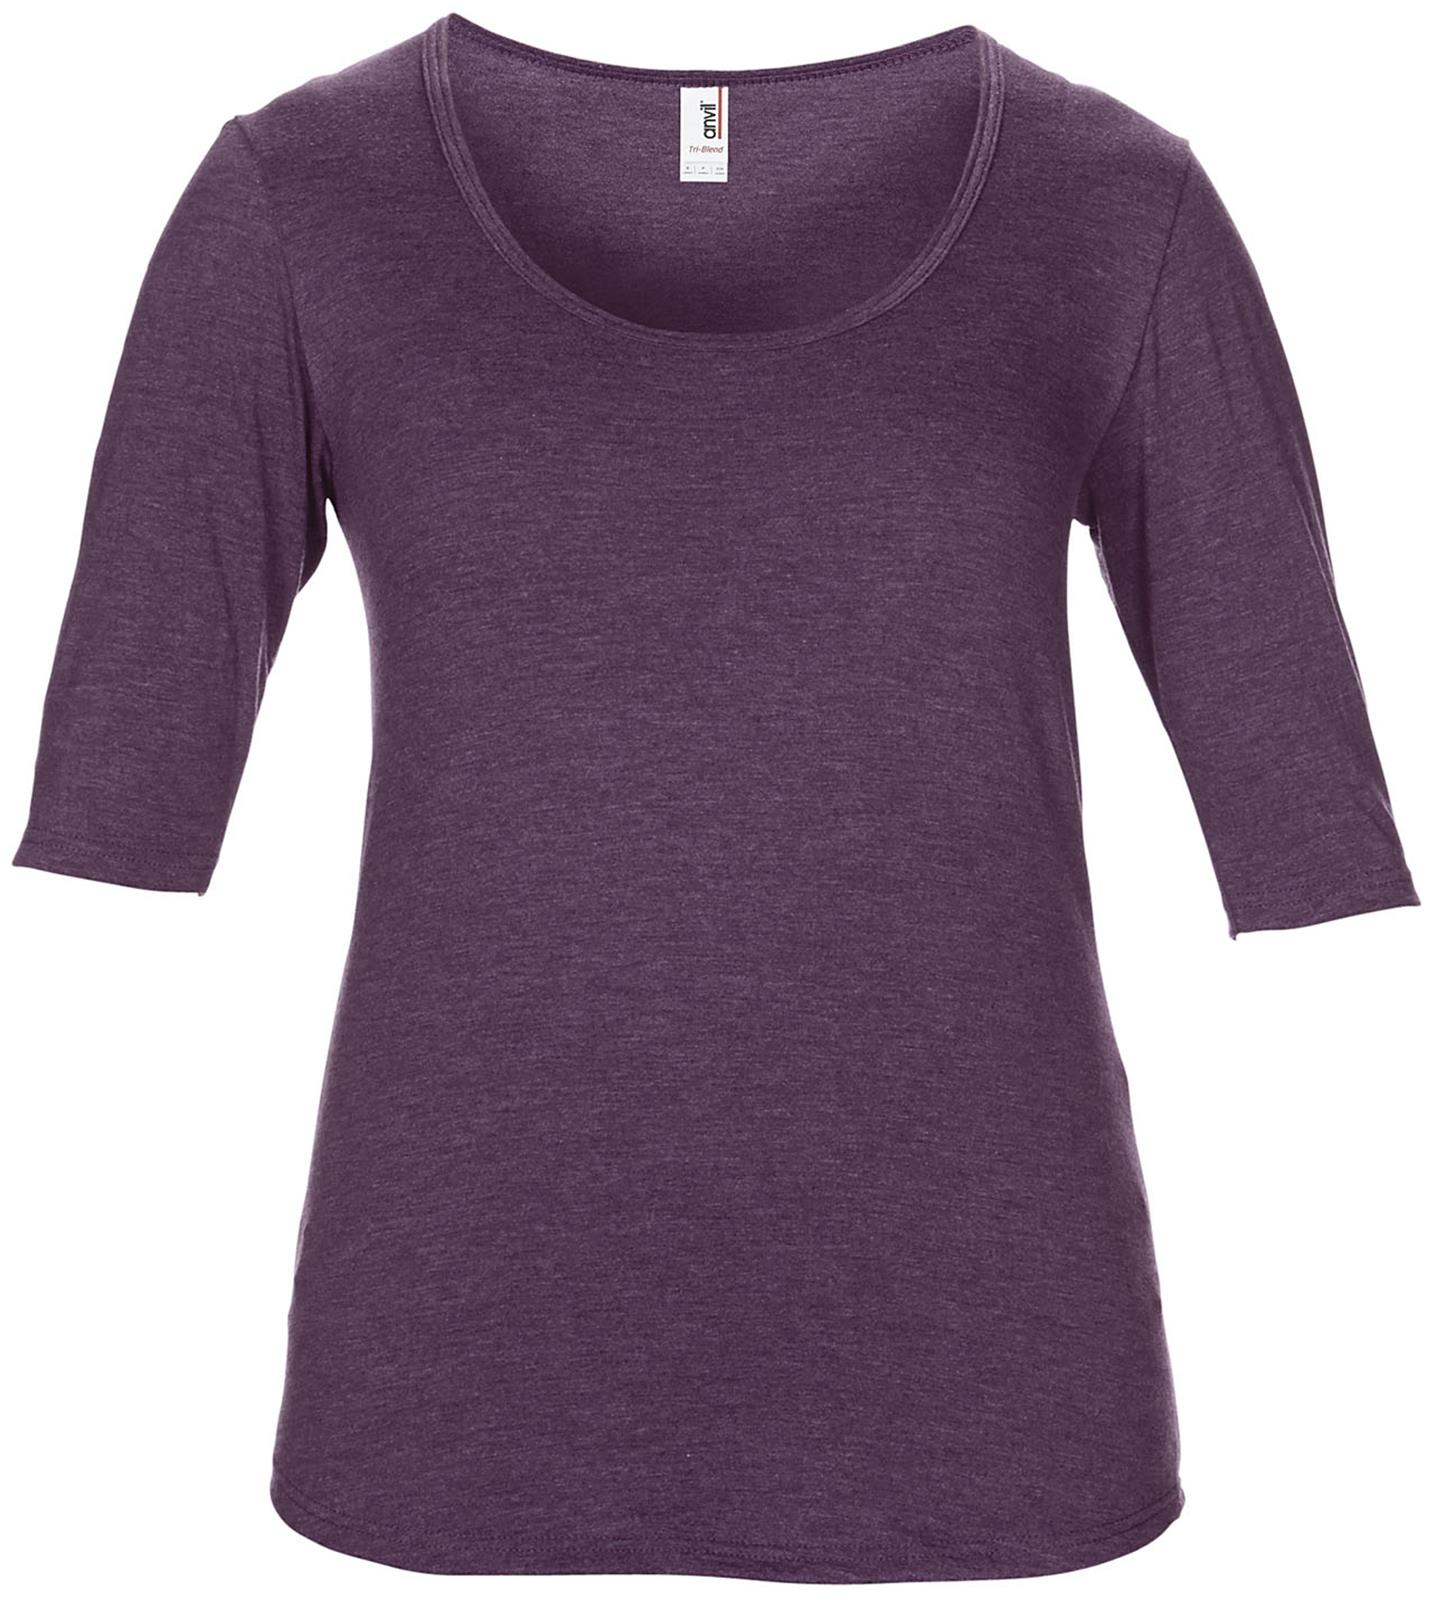 New womens anvil tri blend deep scoop neck 1 2 sleeved t for Deep scoop neck t shirt